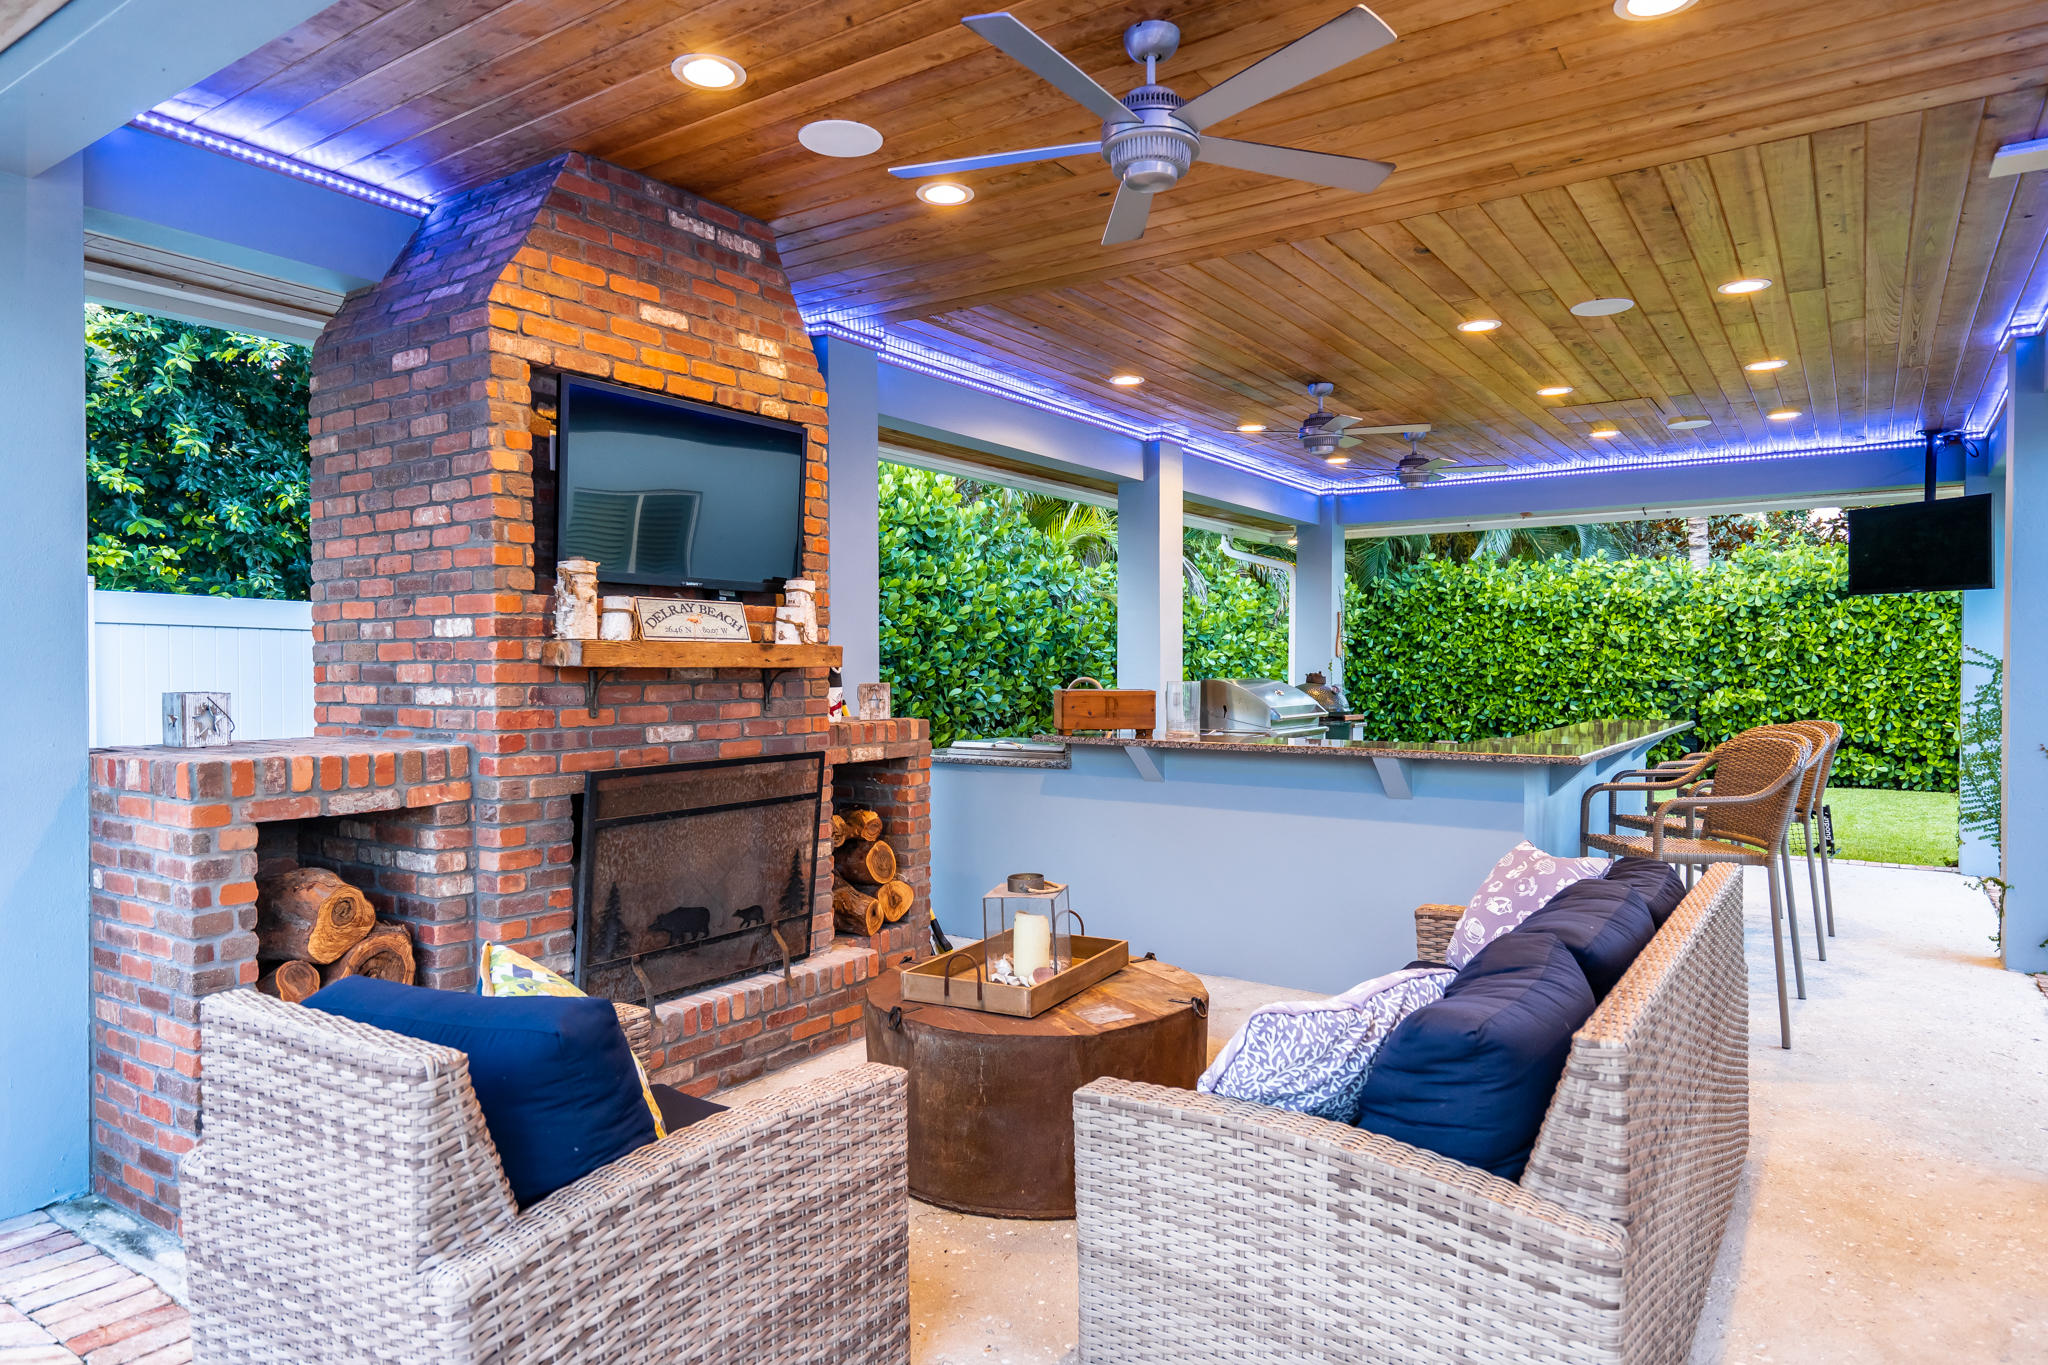 Outdoor living w/ wood burning fireplace